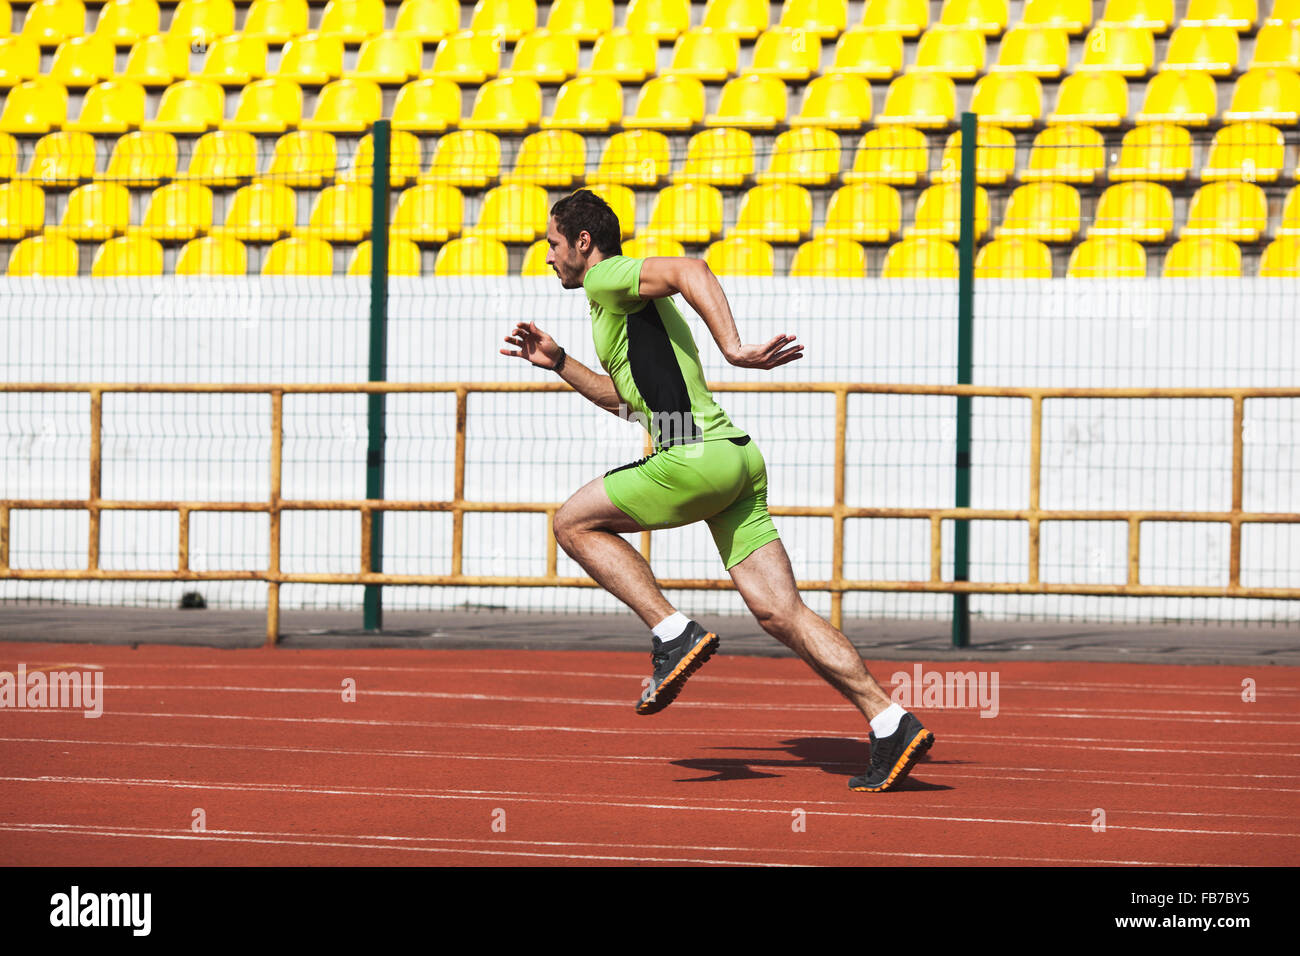 Full length side view of sporty young man running on race track in stadium - Stock Image